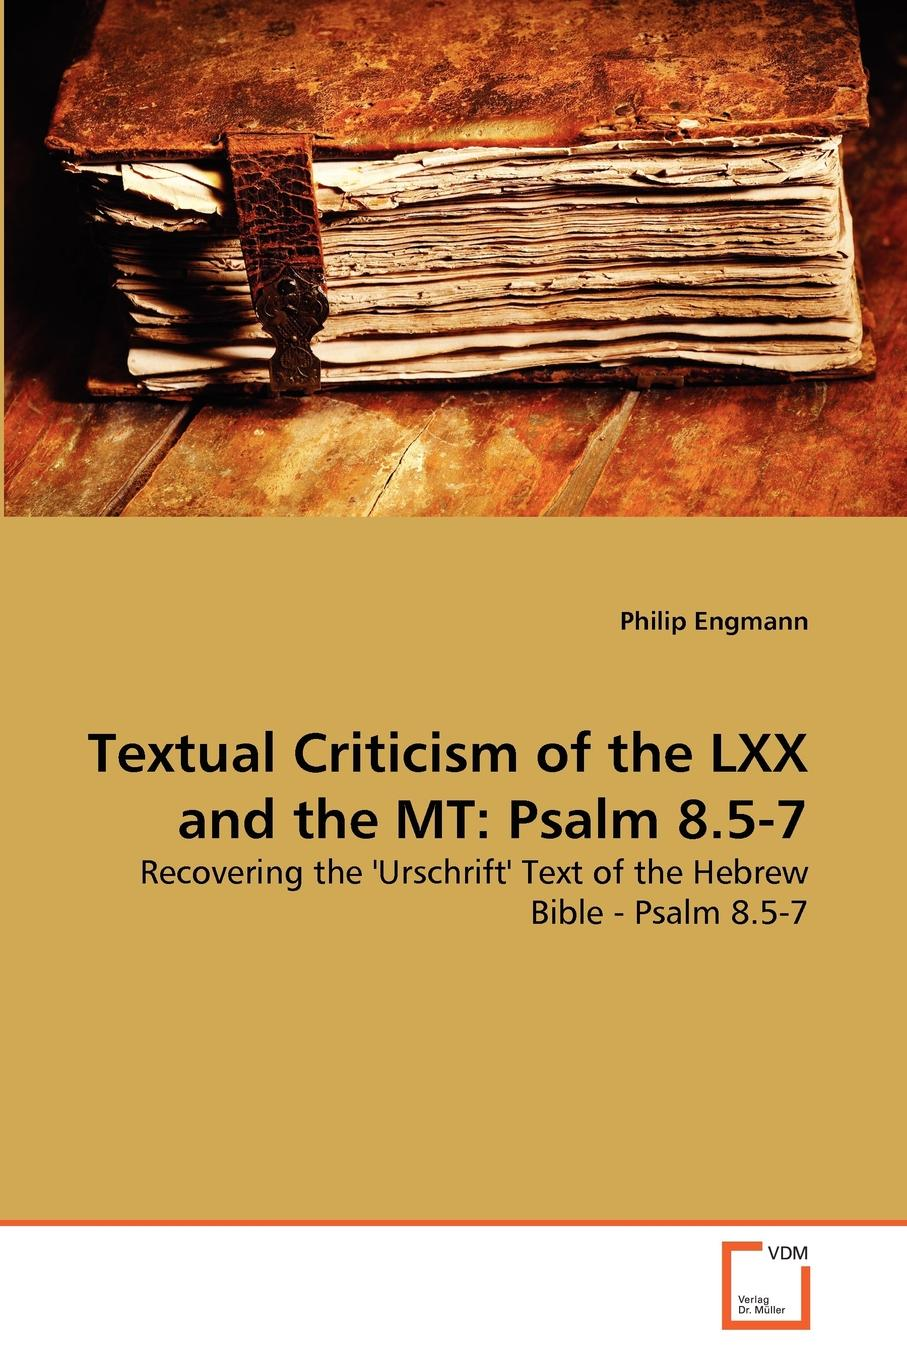 Philip Engmann Textual Criticism of the LXX and the MT. Psalm 8.5-7